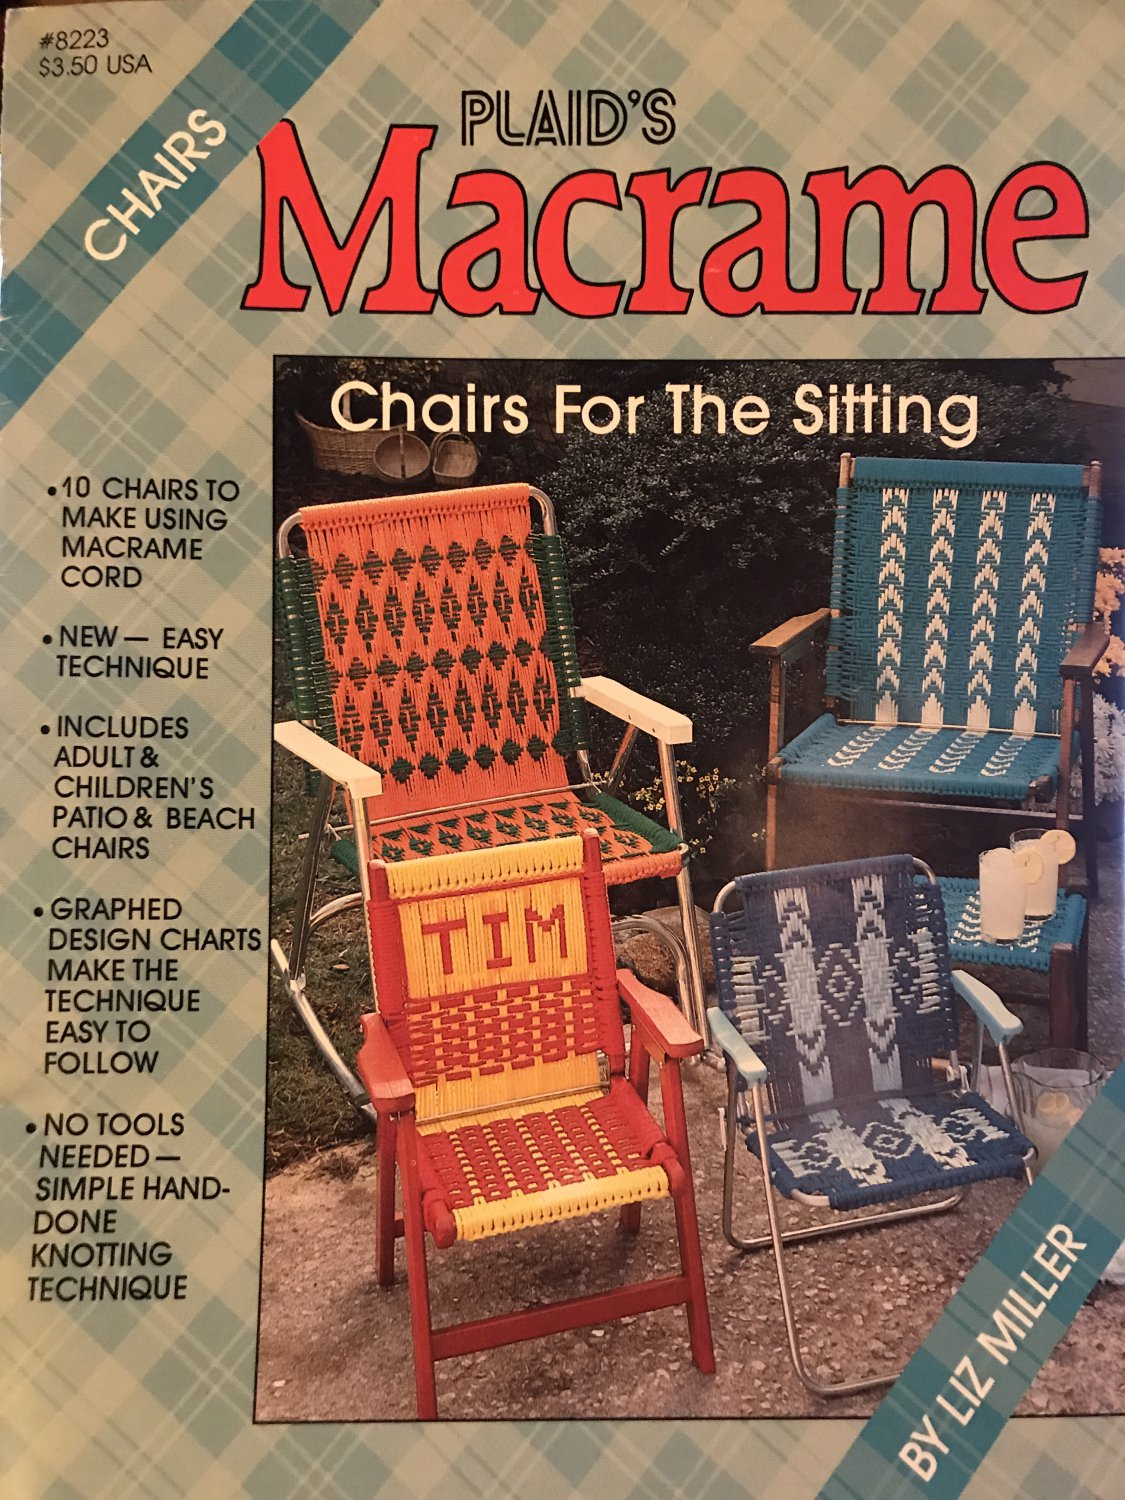 Macrame Chairs for the Sitting Plaid Book 8223